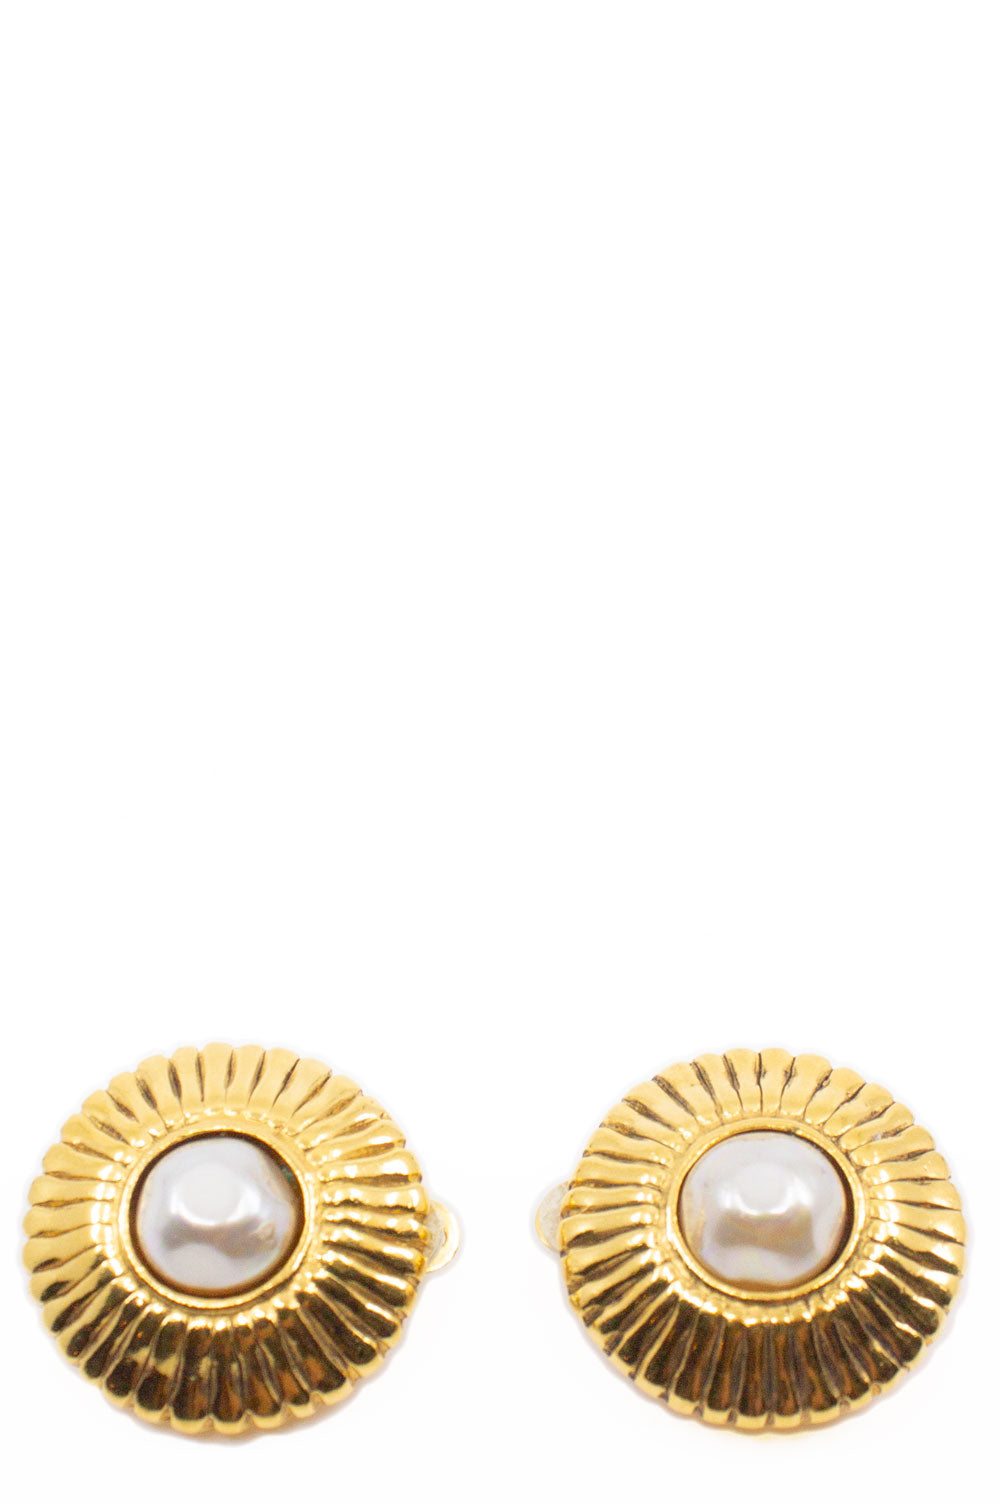 CHANEL Pearl Clip Earrings Frontansicht